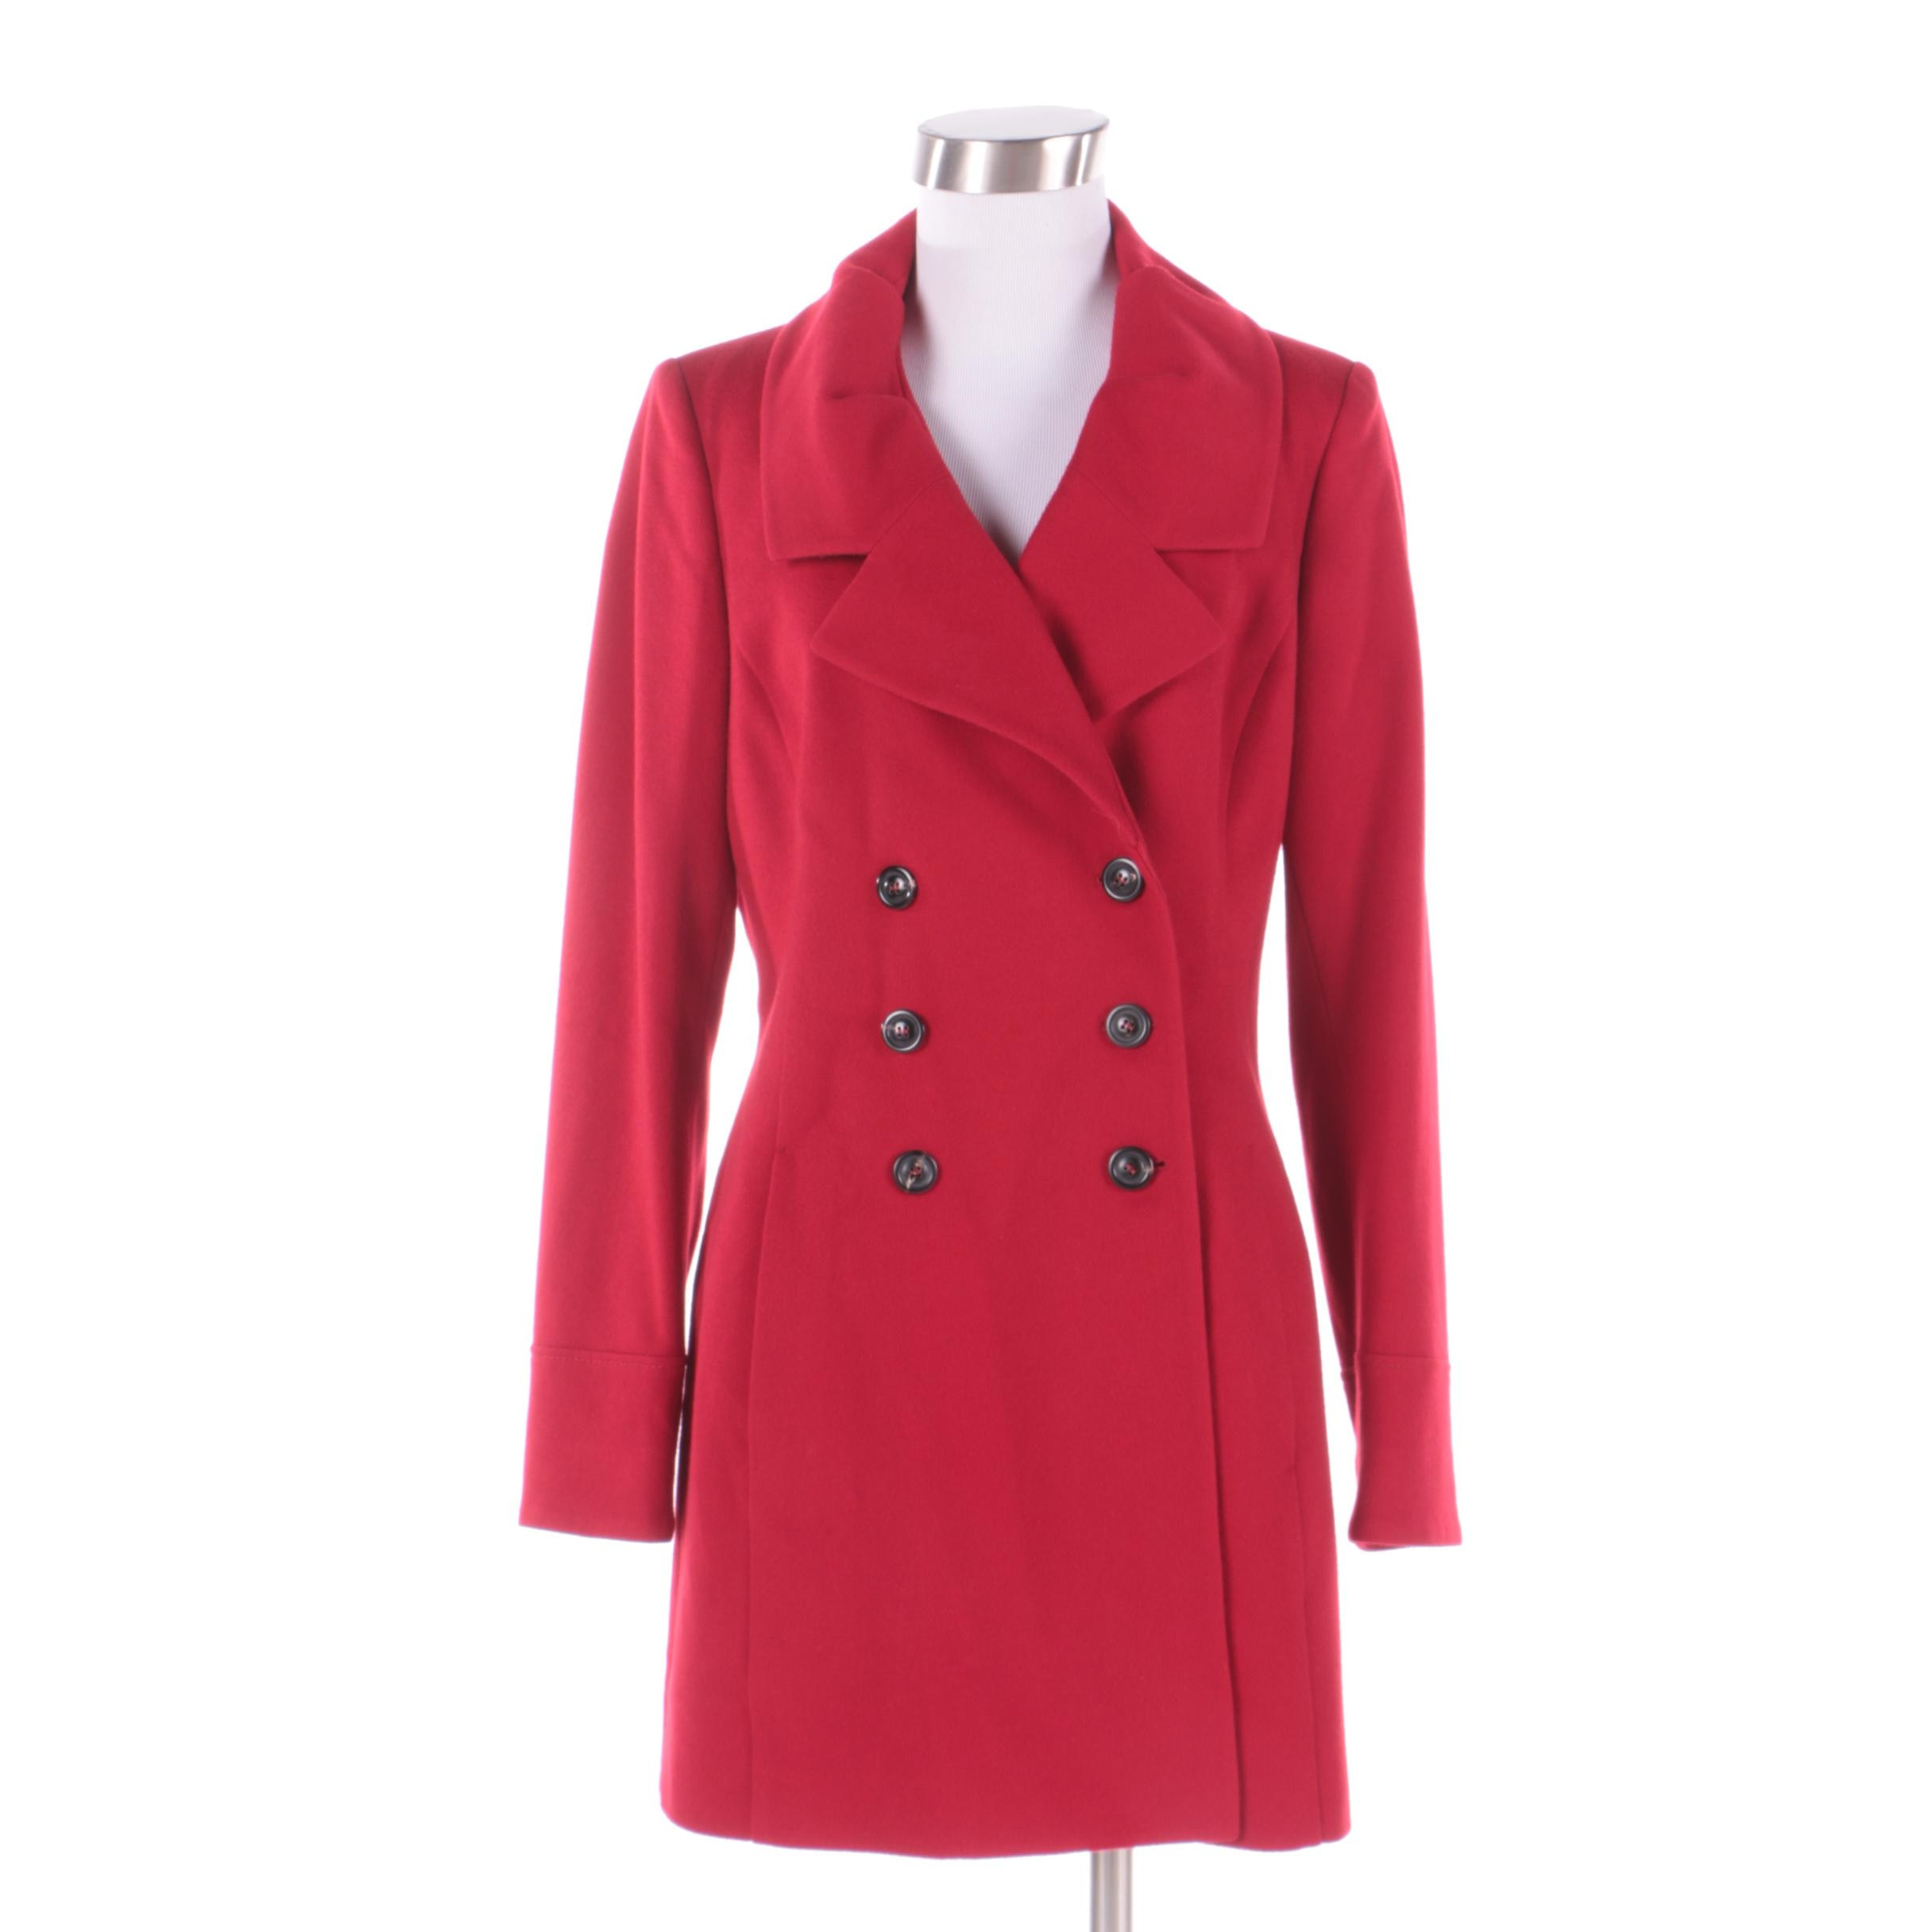 Women's Luciano Barbera Red Cashmere Double-Breasted Jacket